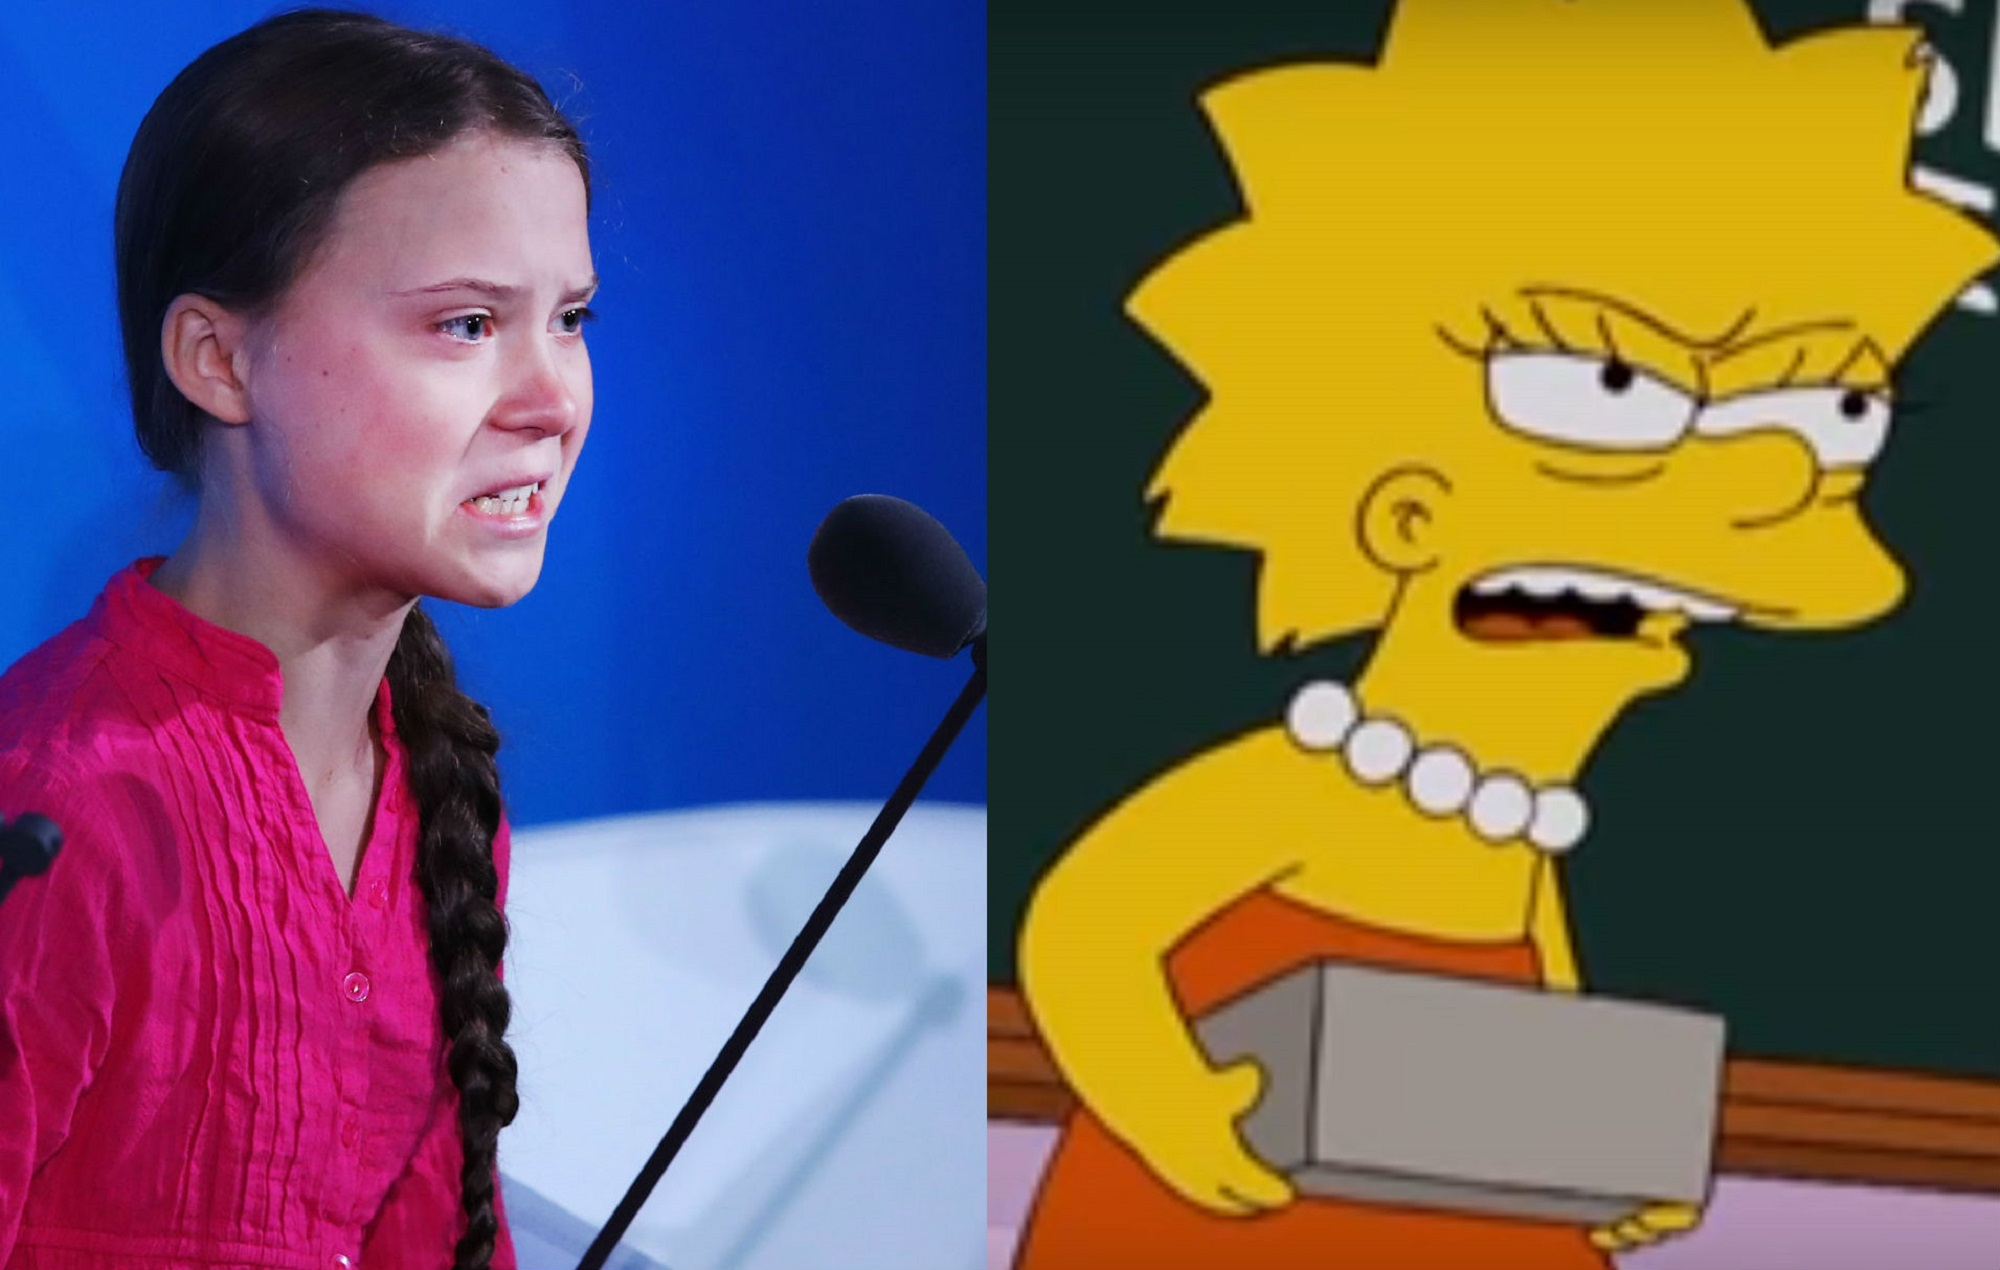 'The Simpsons' predicted Greta Thunberg's climate change speech in 2007 - NME